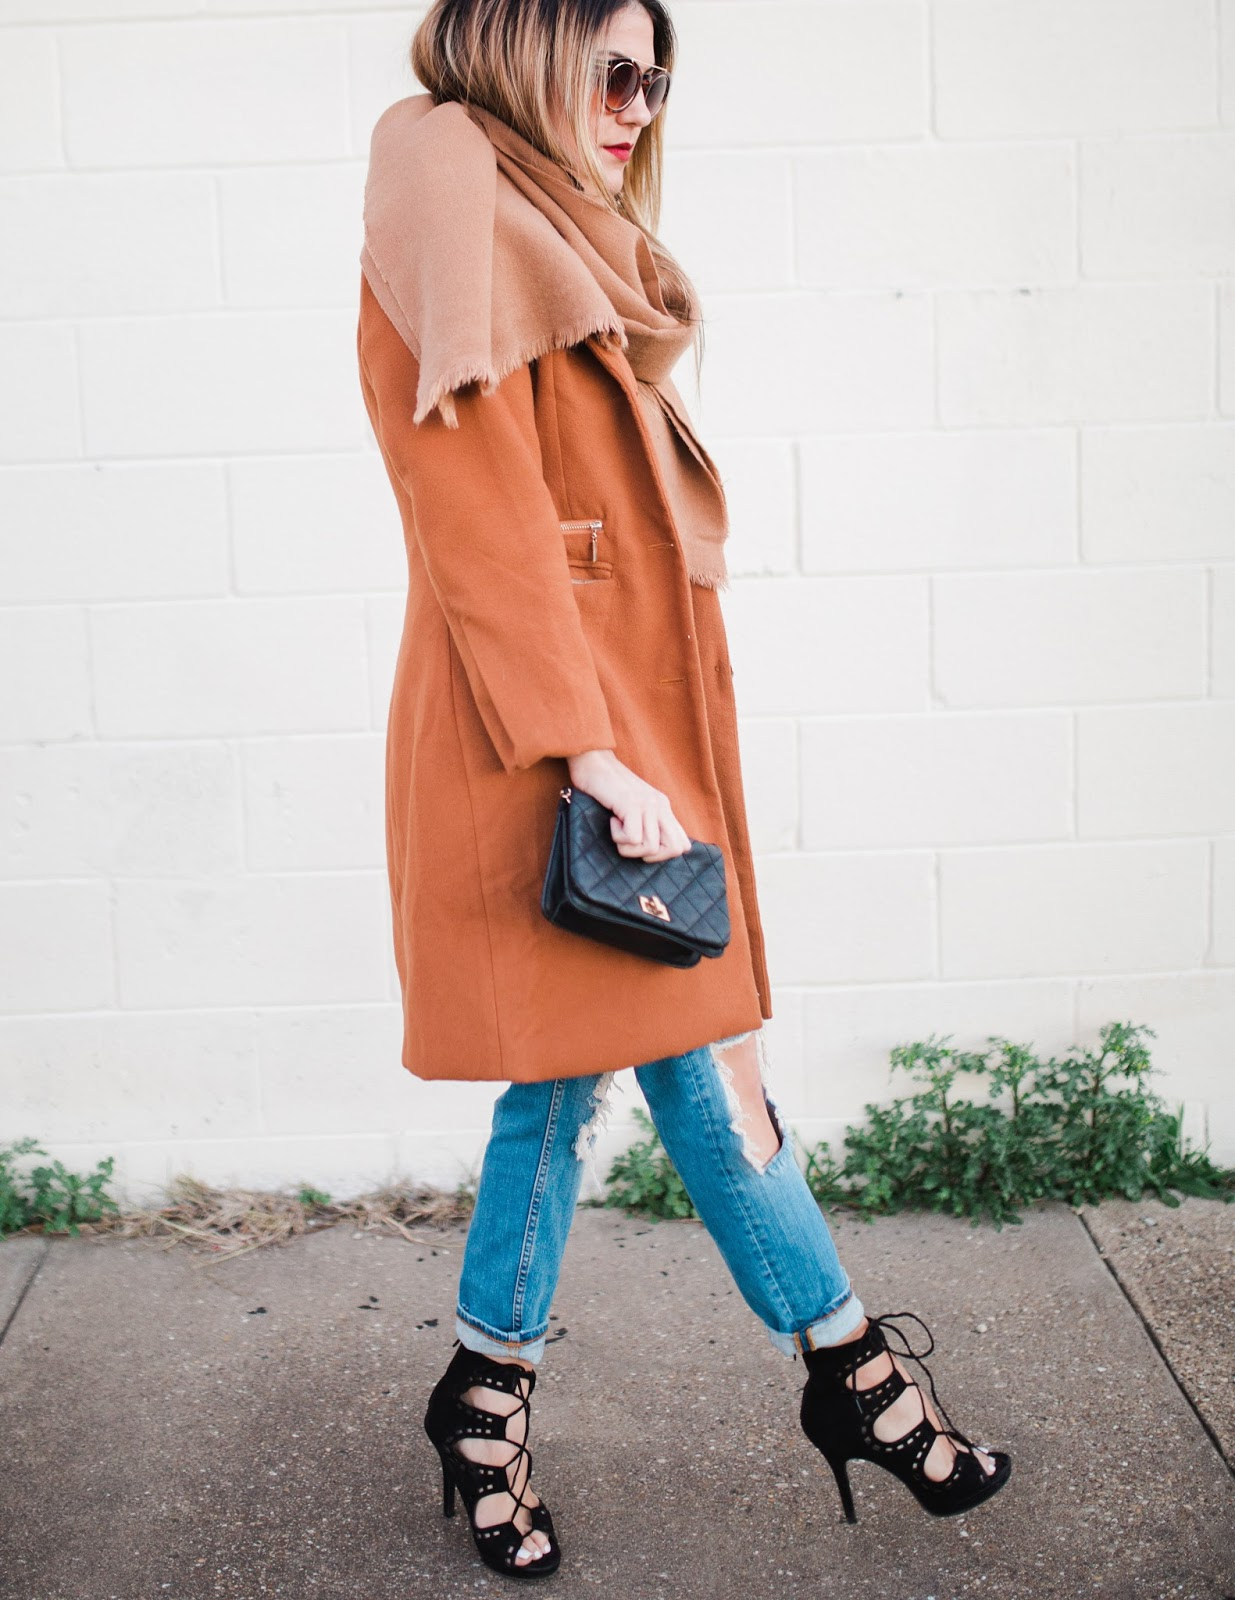 Dark Camel Coat - My Cup of Chic